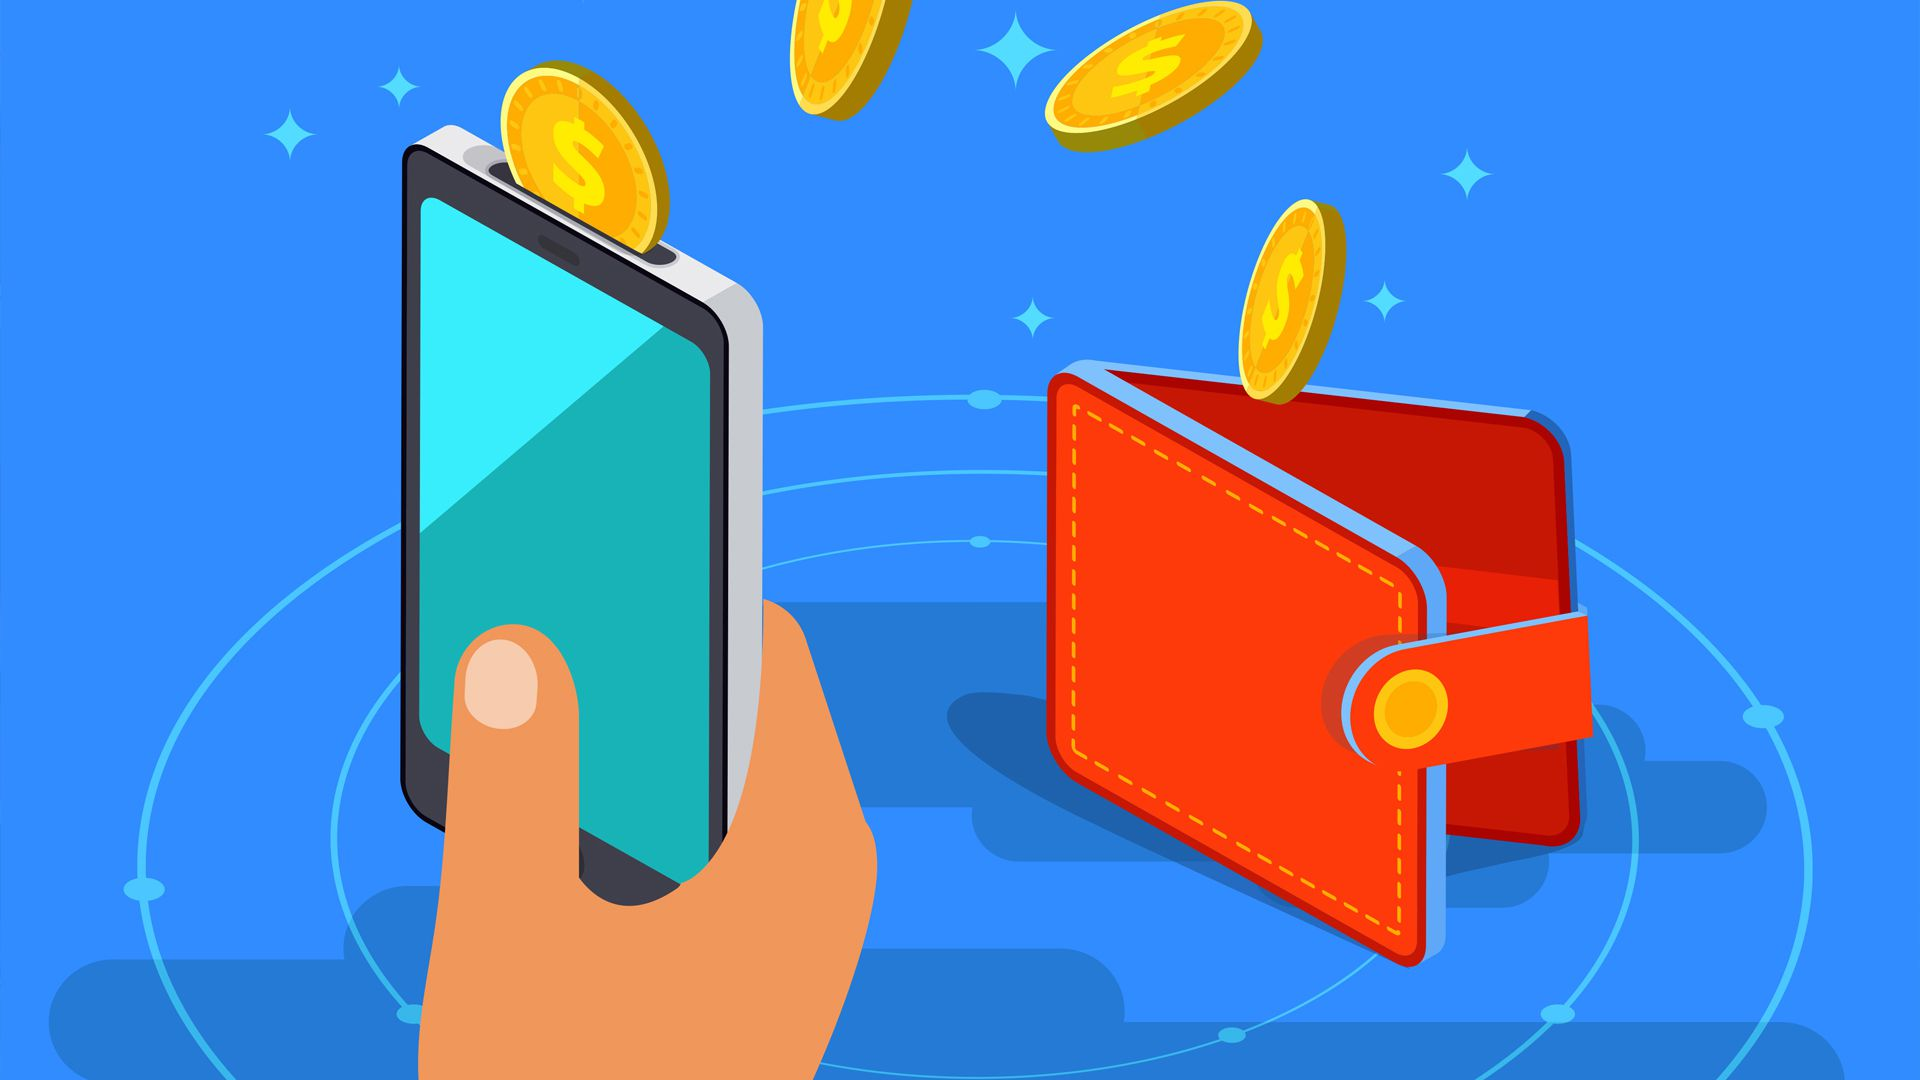 exchange with large sums of cryptocurrency